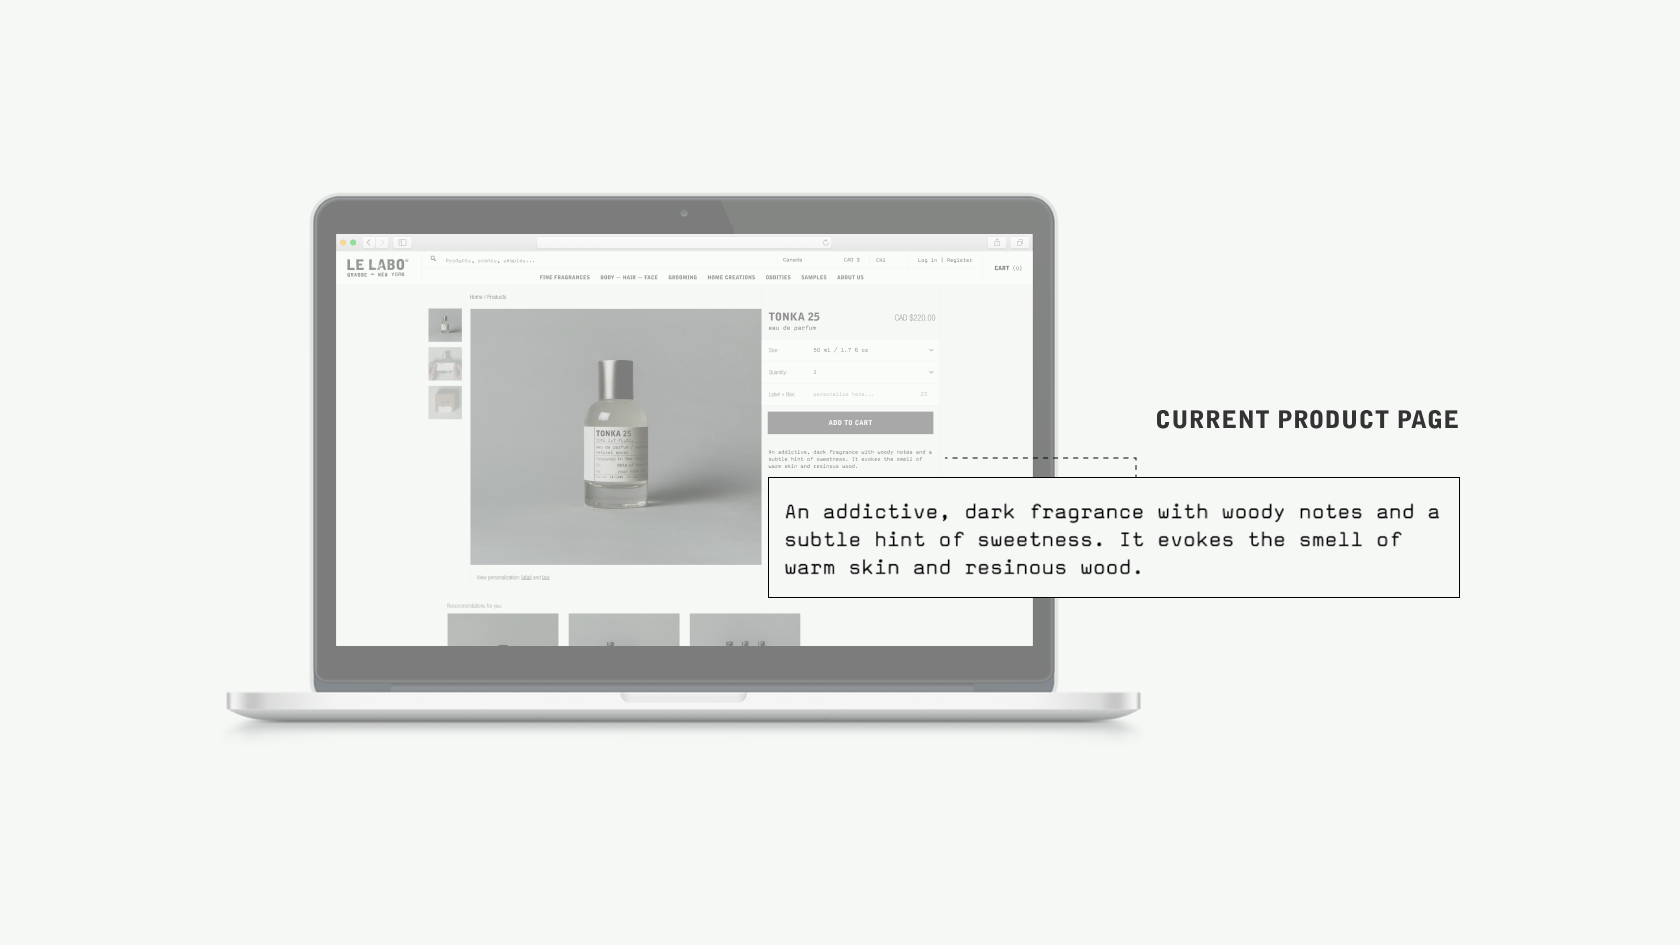 Le Labo Current Product Page